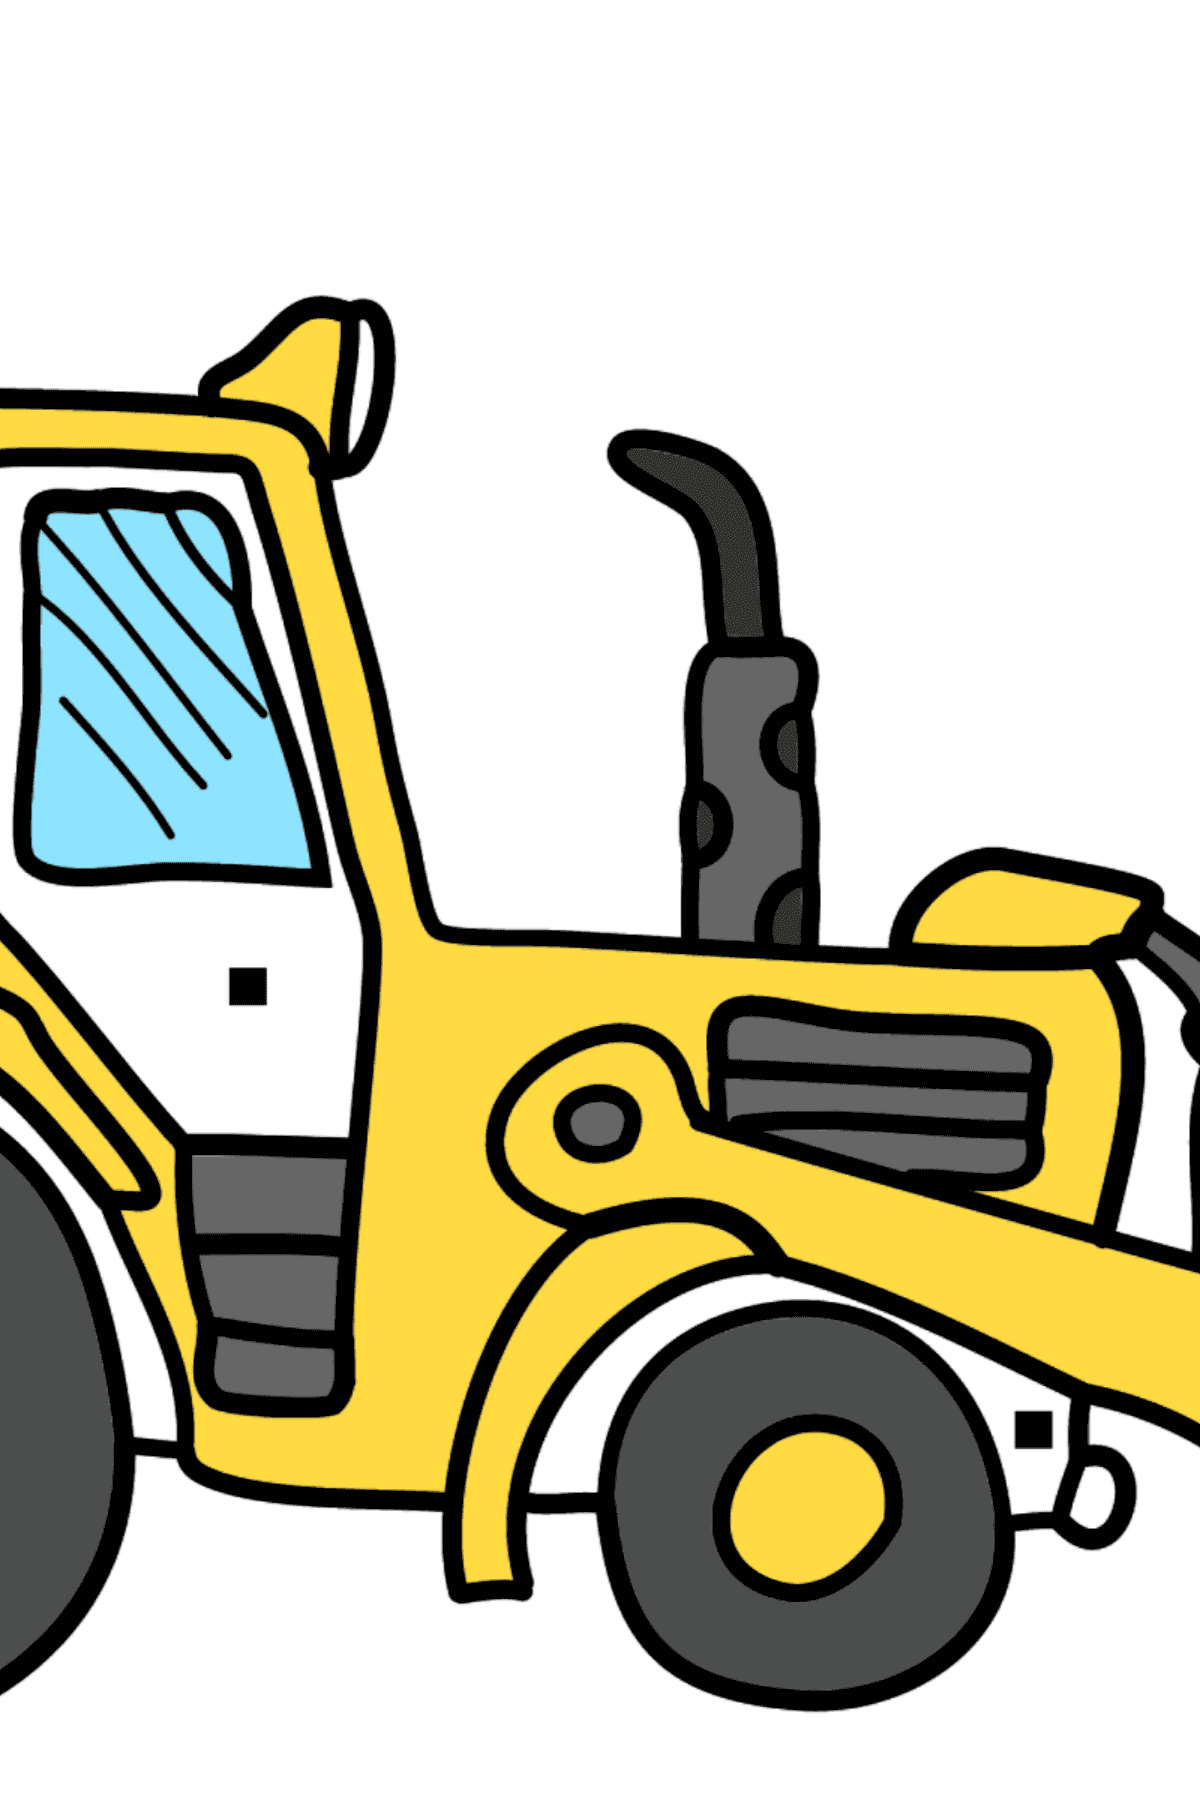 Coloring Page - A Yellow Tractor - Coloring by Symbols for Kids